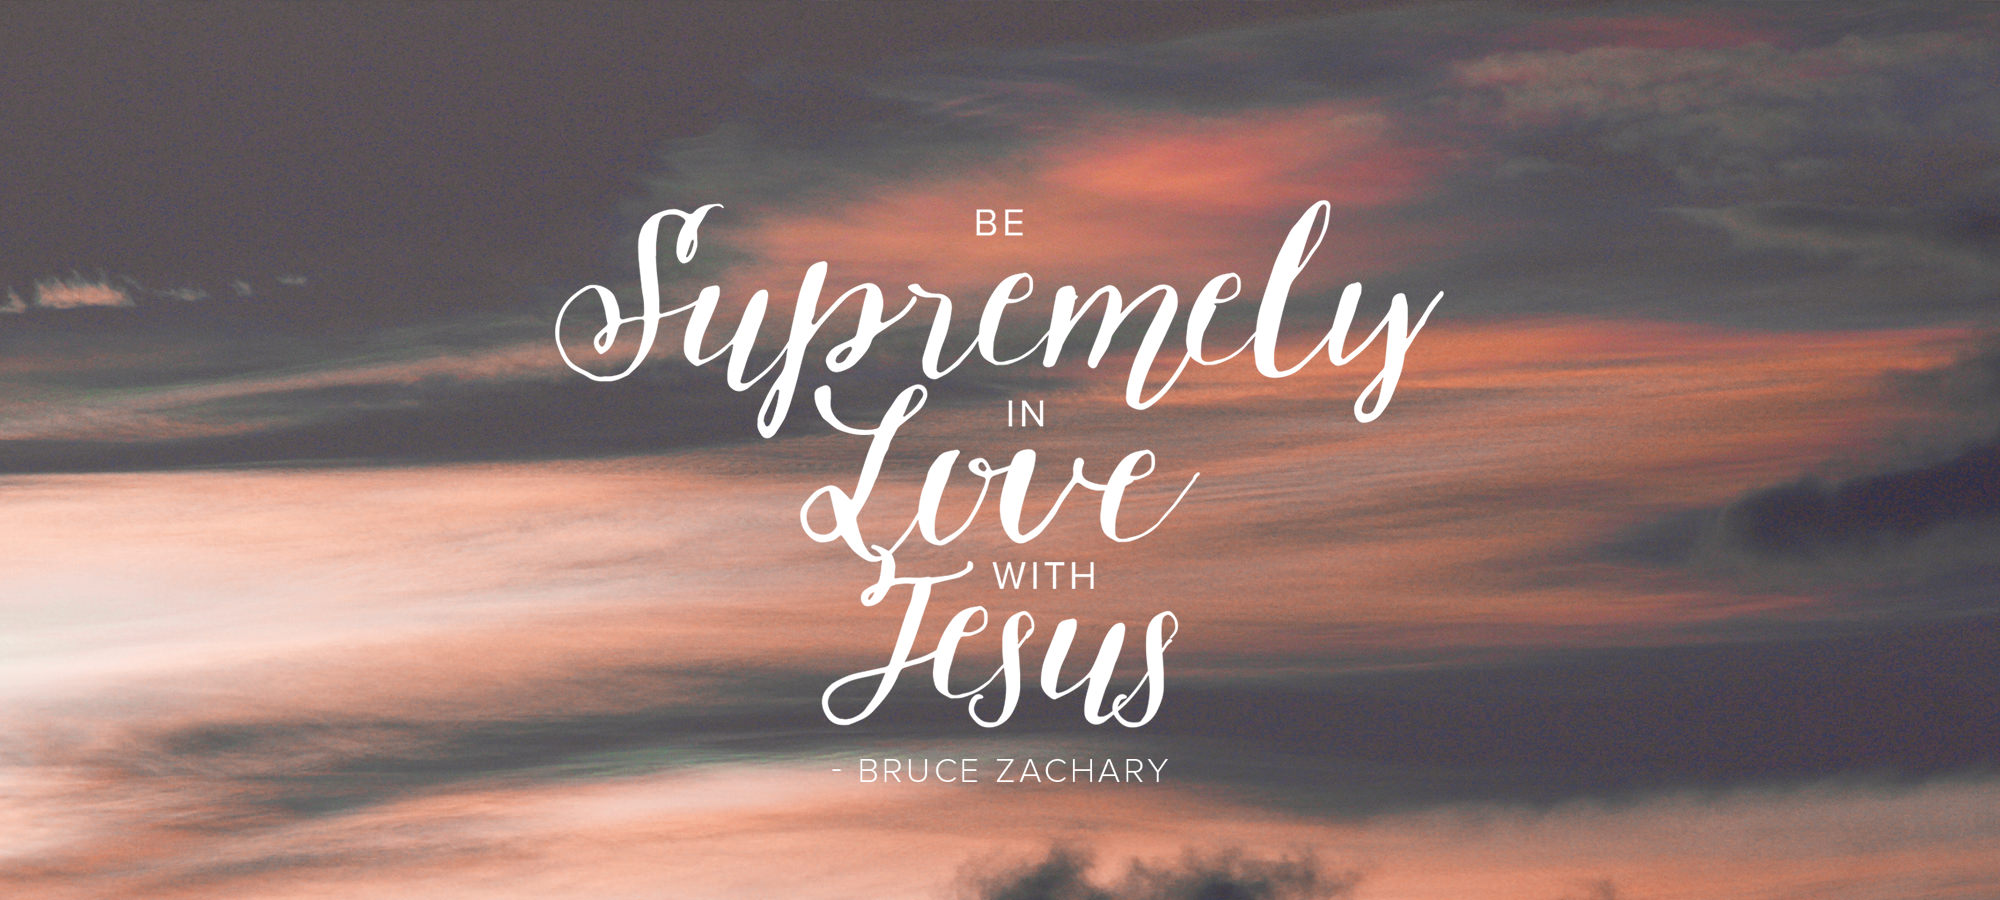 Be Supremely in Love with Jesus